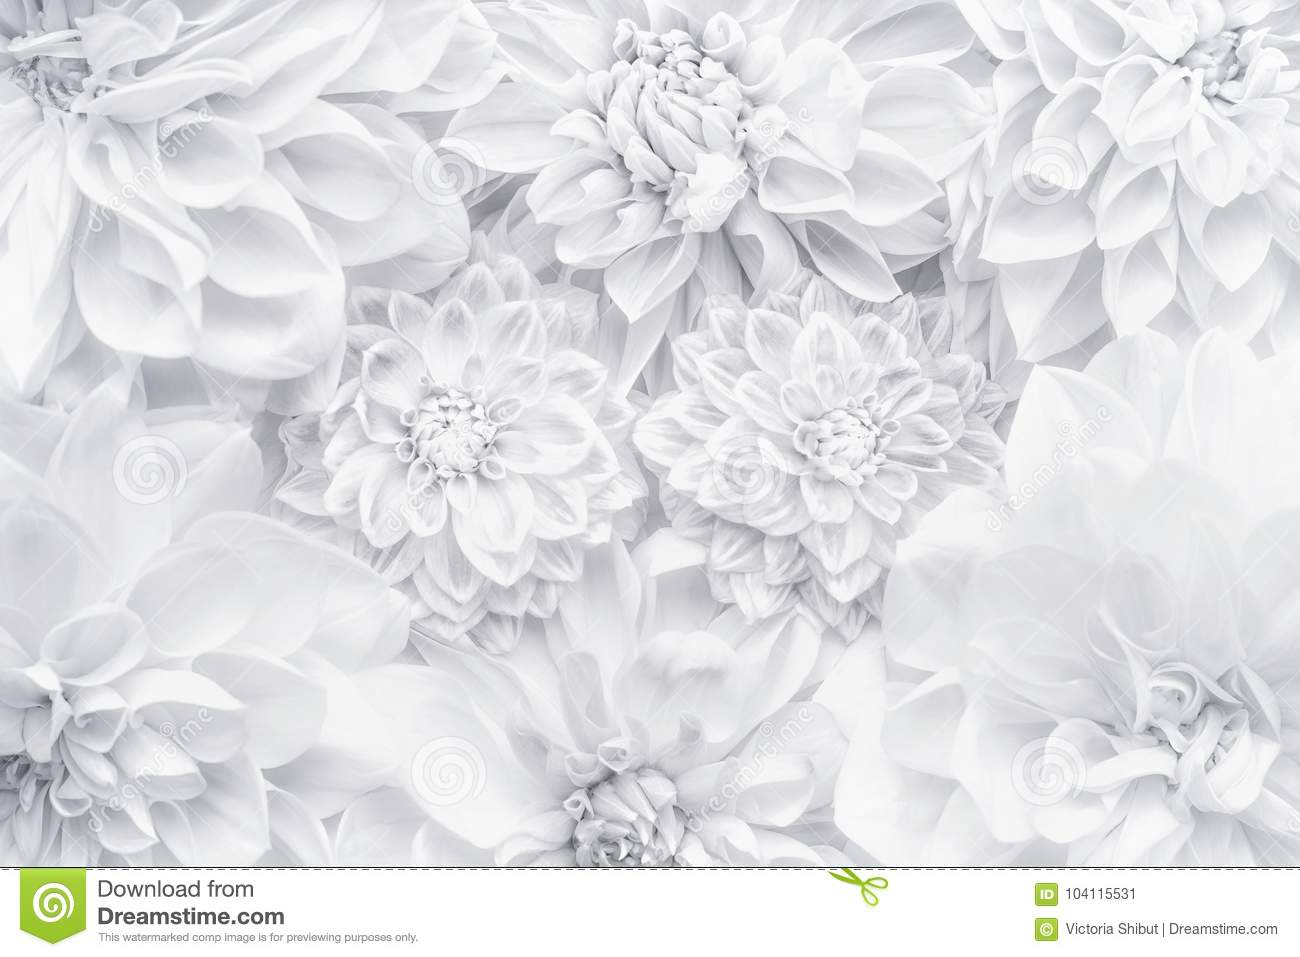 Creative white flowers layout , floral pattern or background for greeting card of Mothers day,birthday, Valentine`s Day, wedding